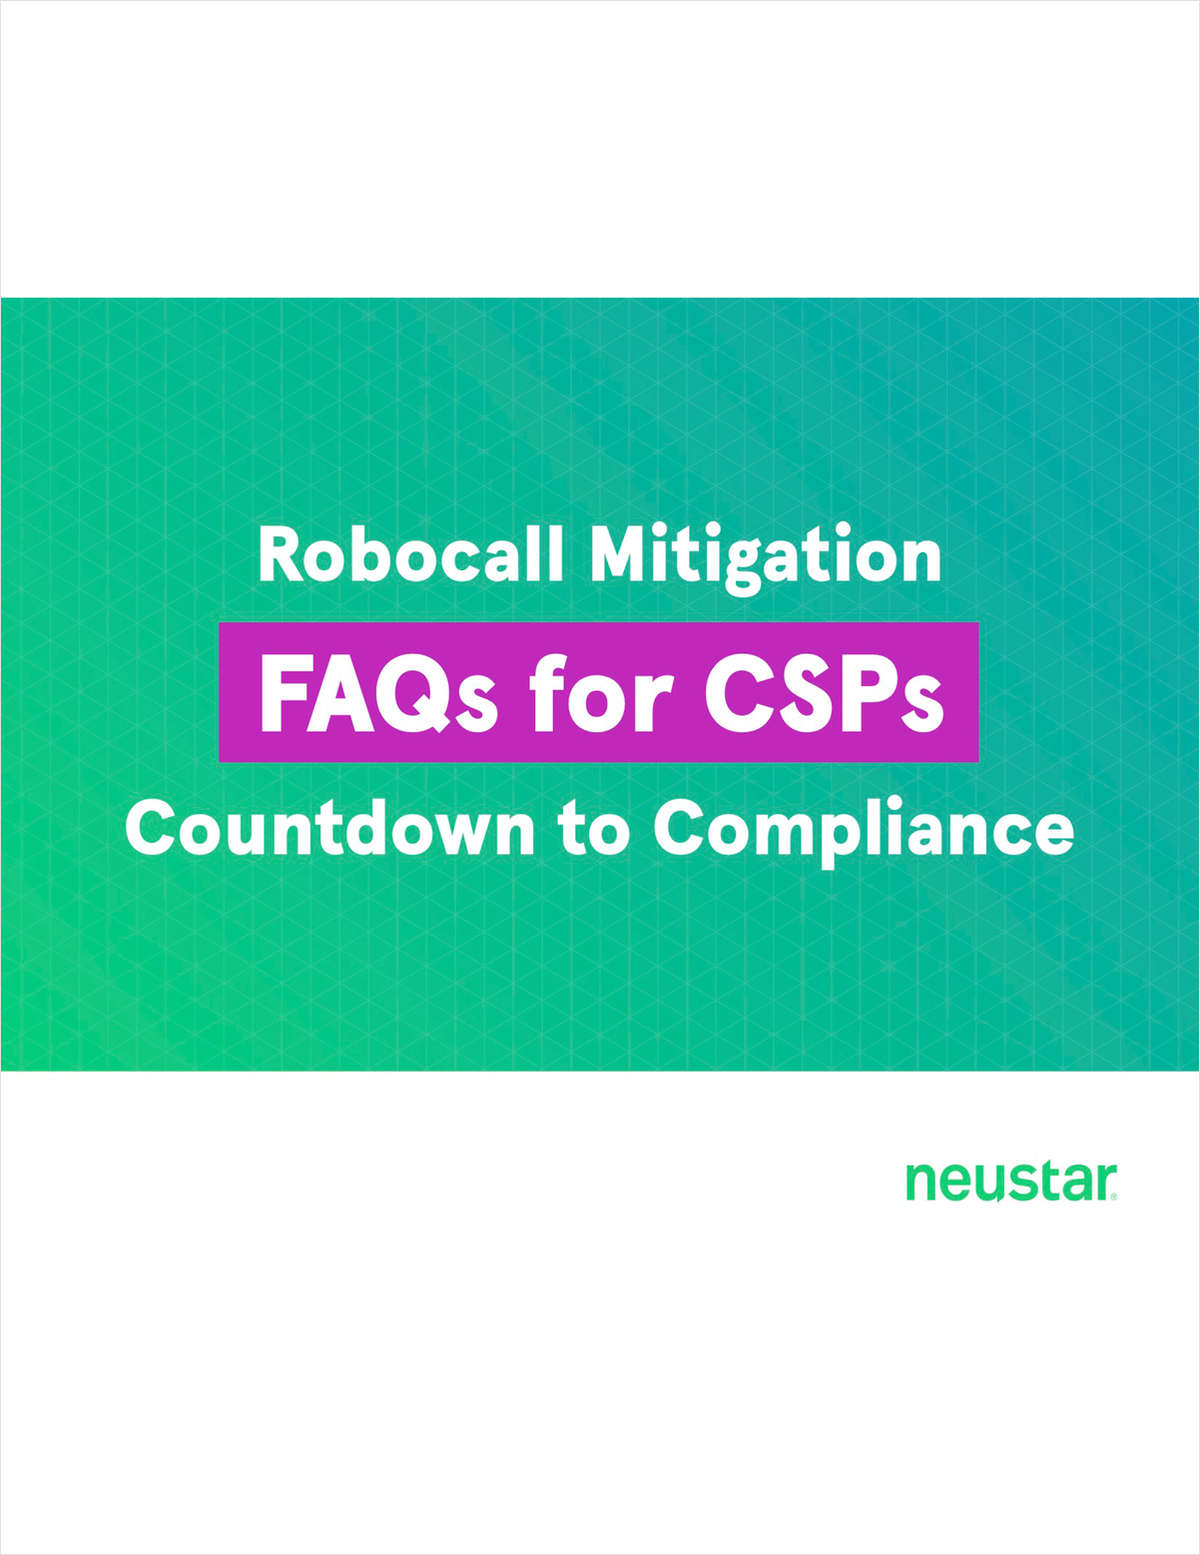 Robocall Mitigation FAQs for CSPs